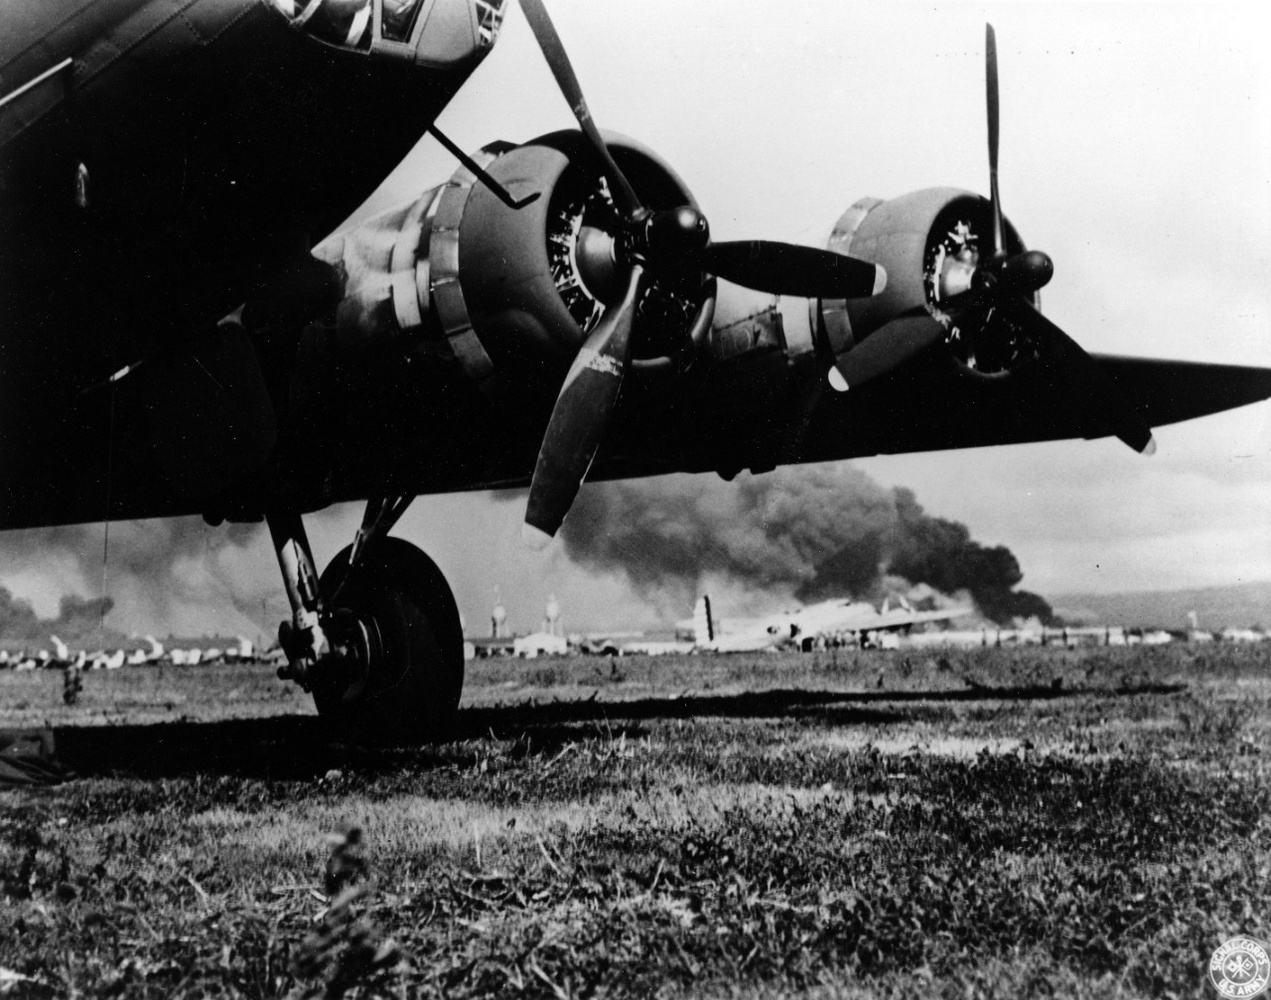 """A U.S. Army B-17E at Hickam Air Field, after landing safely during the Japanese air raid. Smoke from burning ships at Pearl Harbor is visible in the distance. Photographer may be Staff Sergeant Lee Embree."""